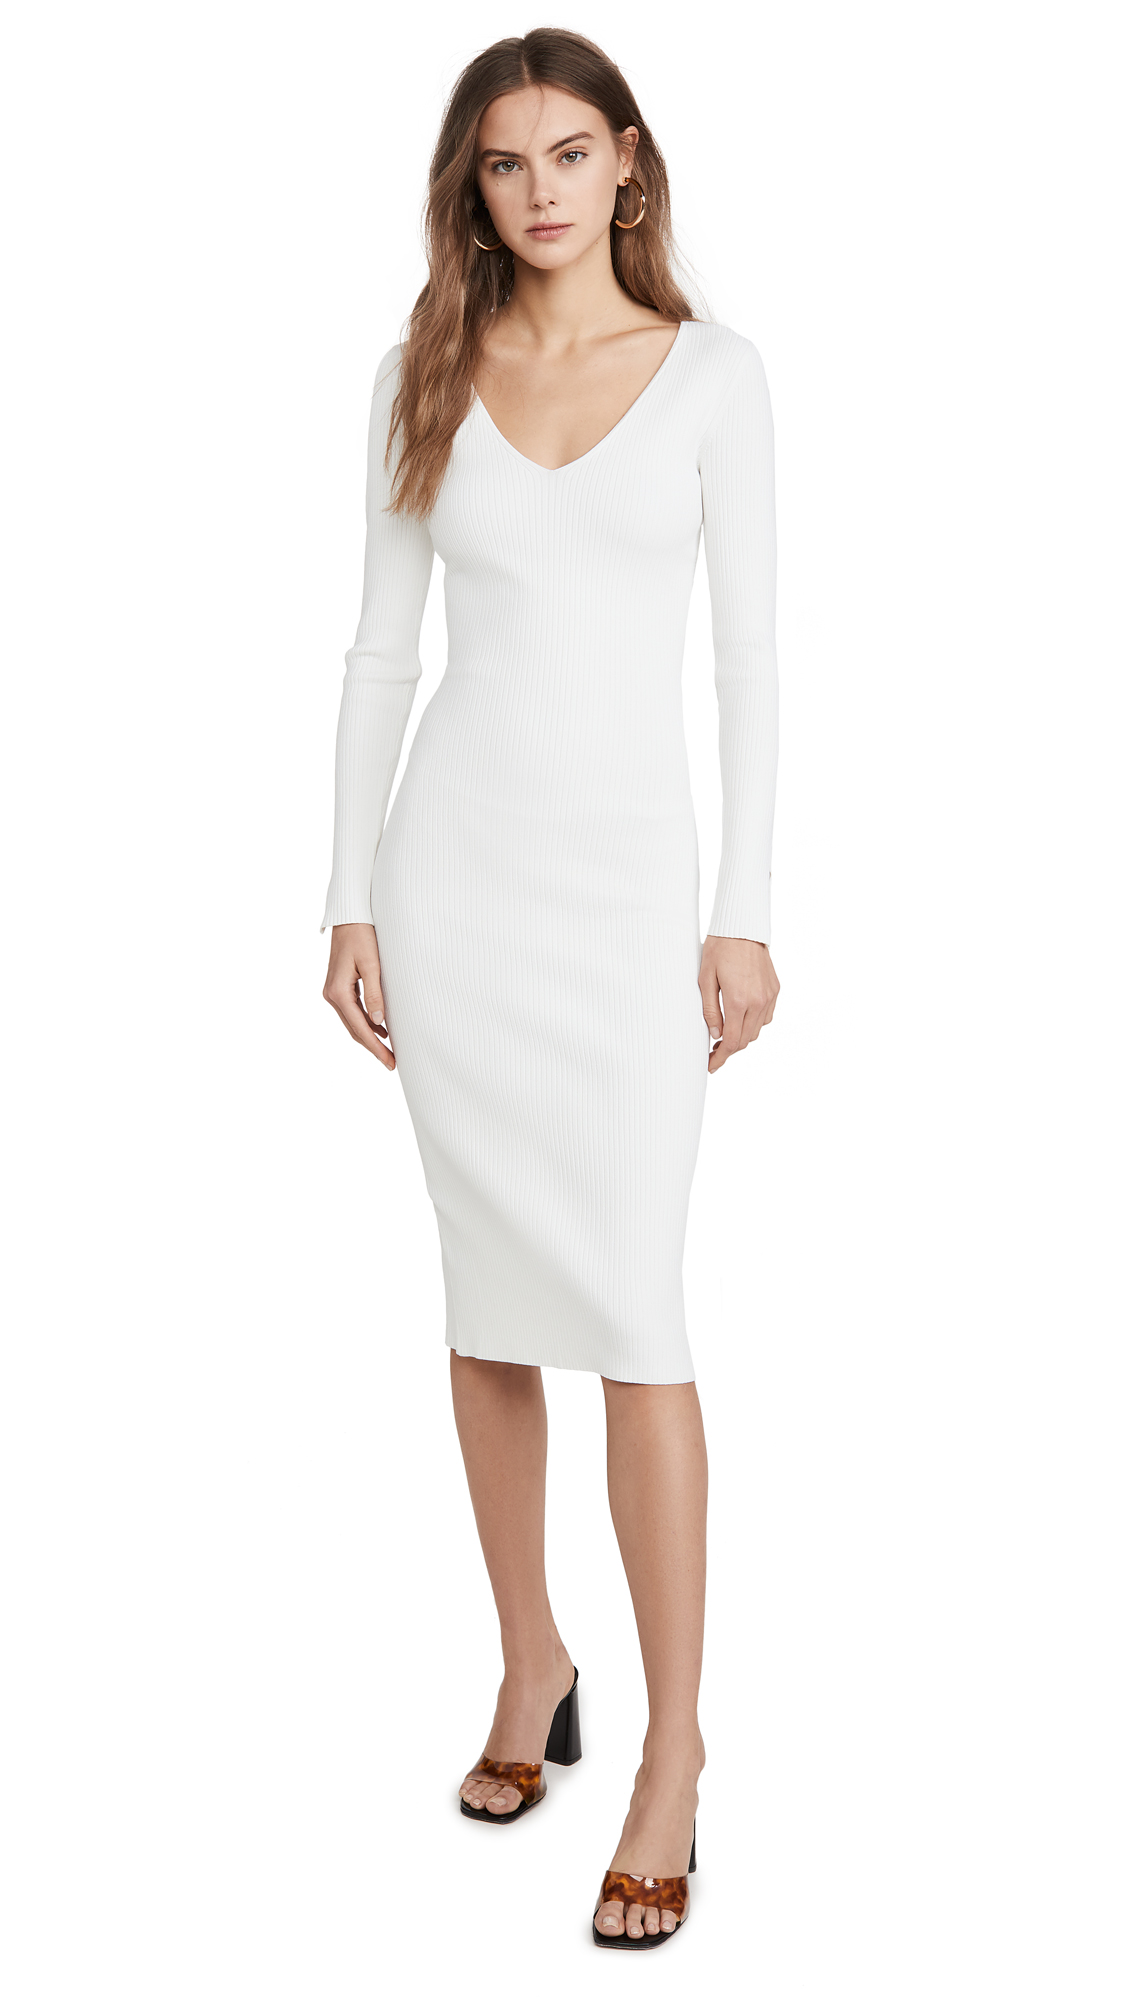 Jonathan Simkhai Deep Rib Open Neck Dress - 30% Off Sale